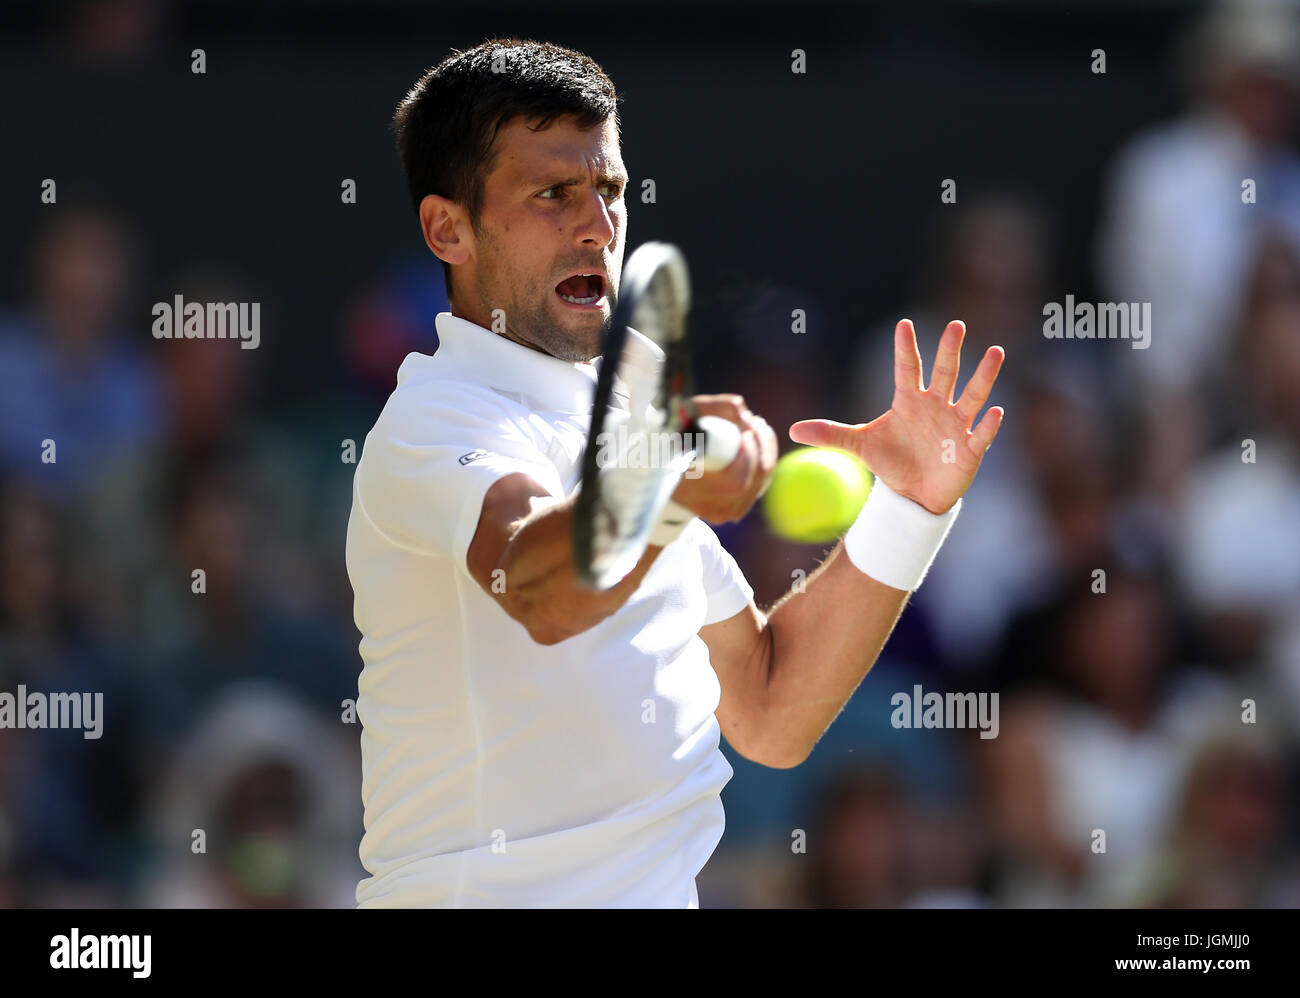 Novak Djokovic in action against Ernests Gulbis on day six of the Wimbledon Championships at The All England Lawn - Stock Image